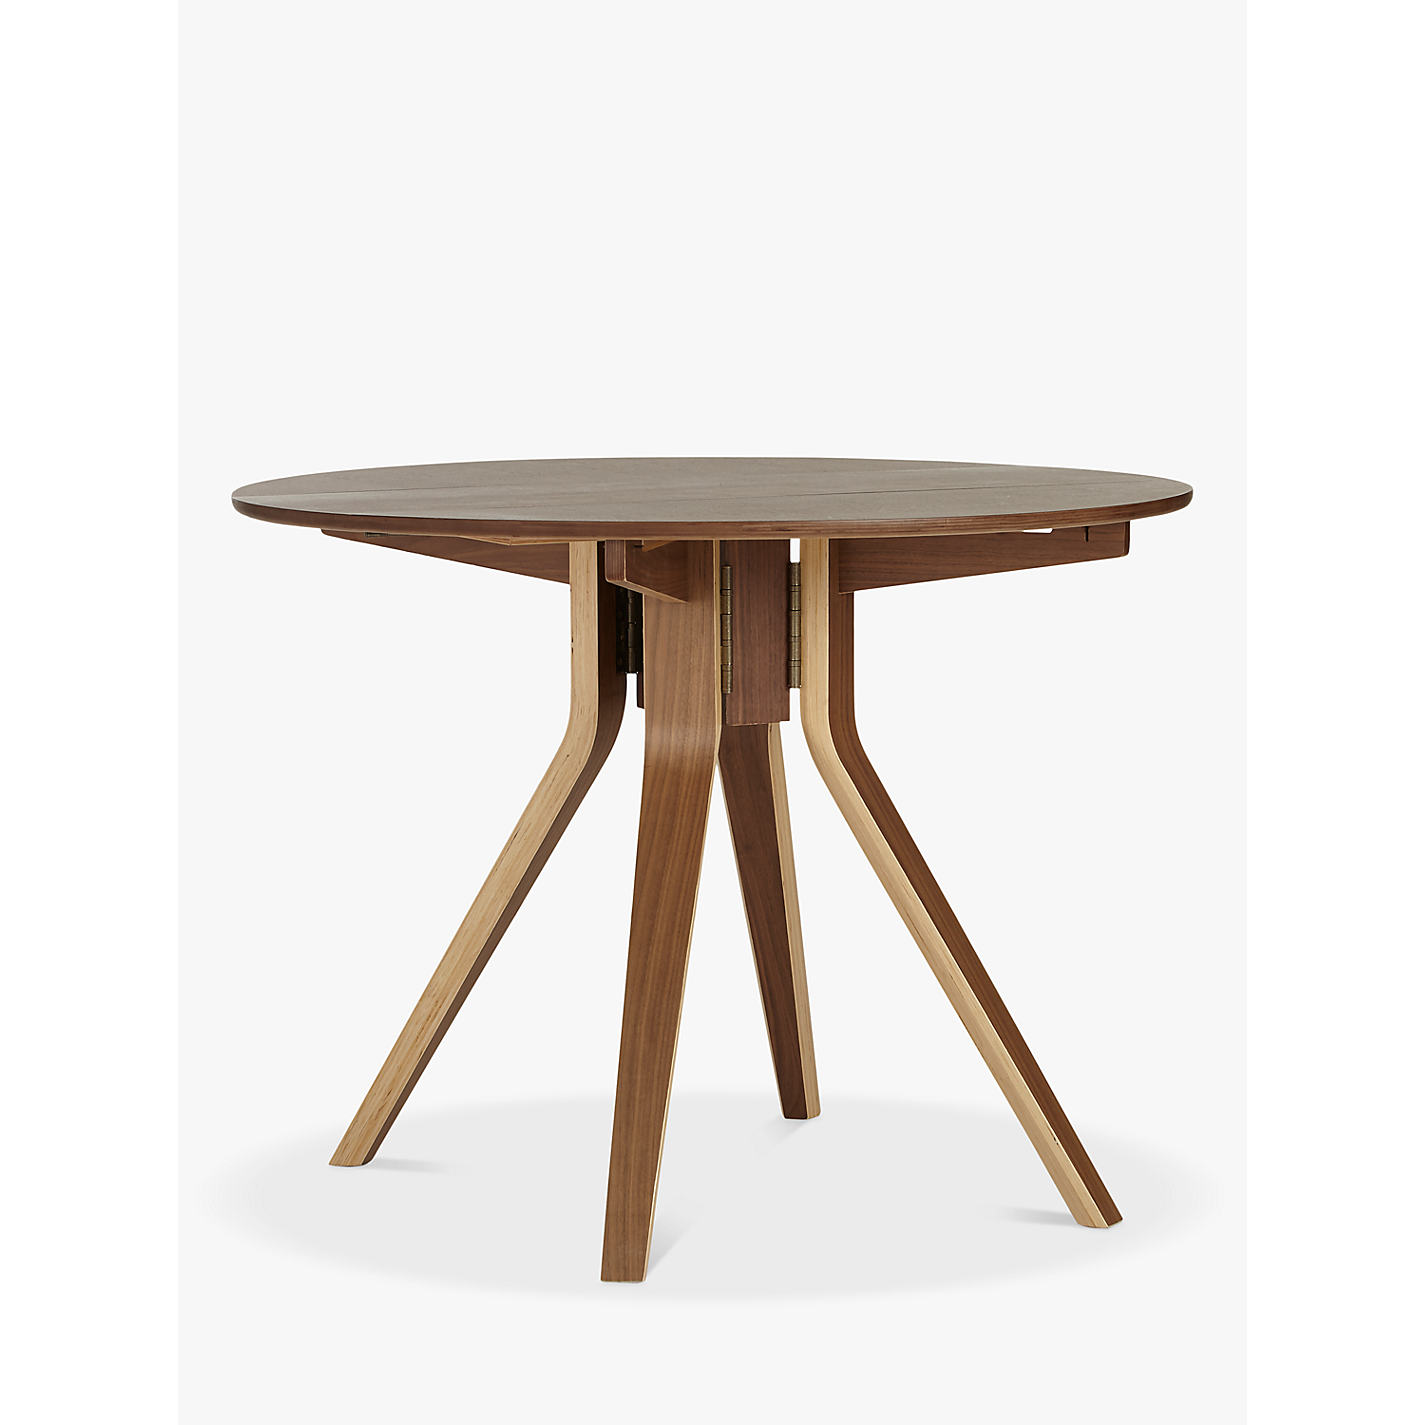 Folding side table john lewis - Buy John Lewis Radar 4 Seater Drop Leaf Dining Table Walnut Online At